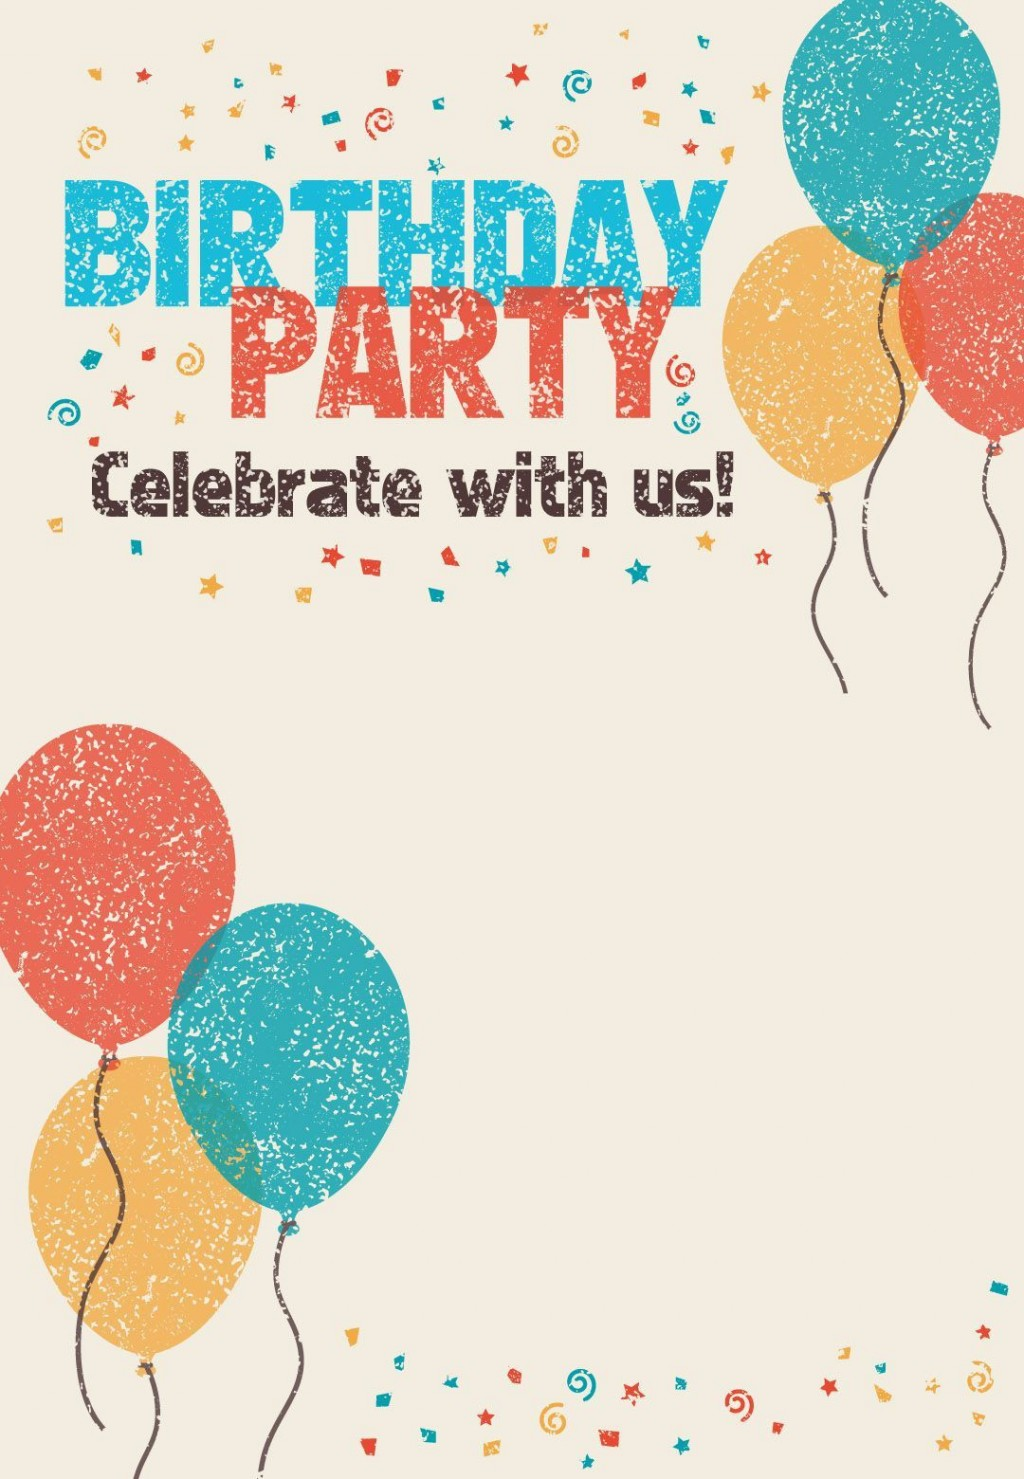 004 Fearsome Birthday Card Template Free Inspiration  Invitation Photoshop Download WordLarge